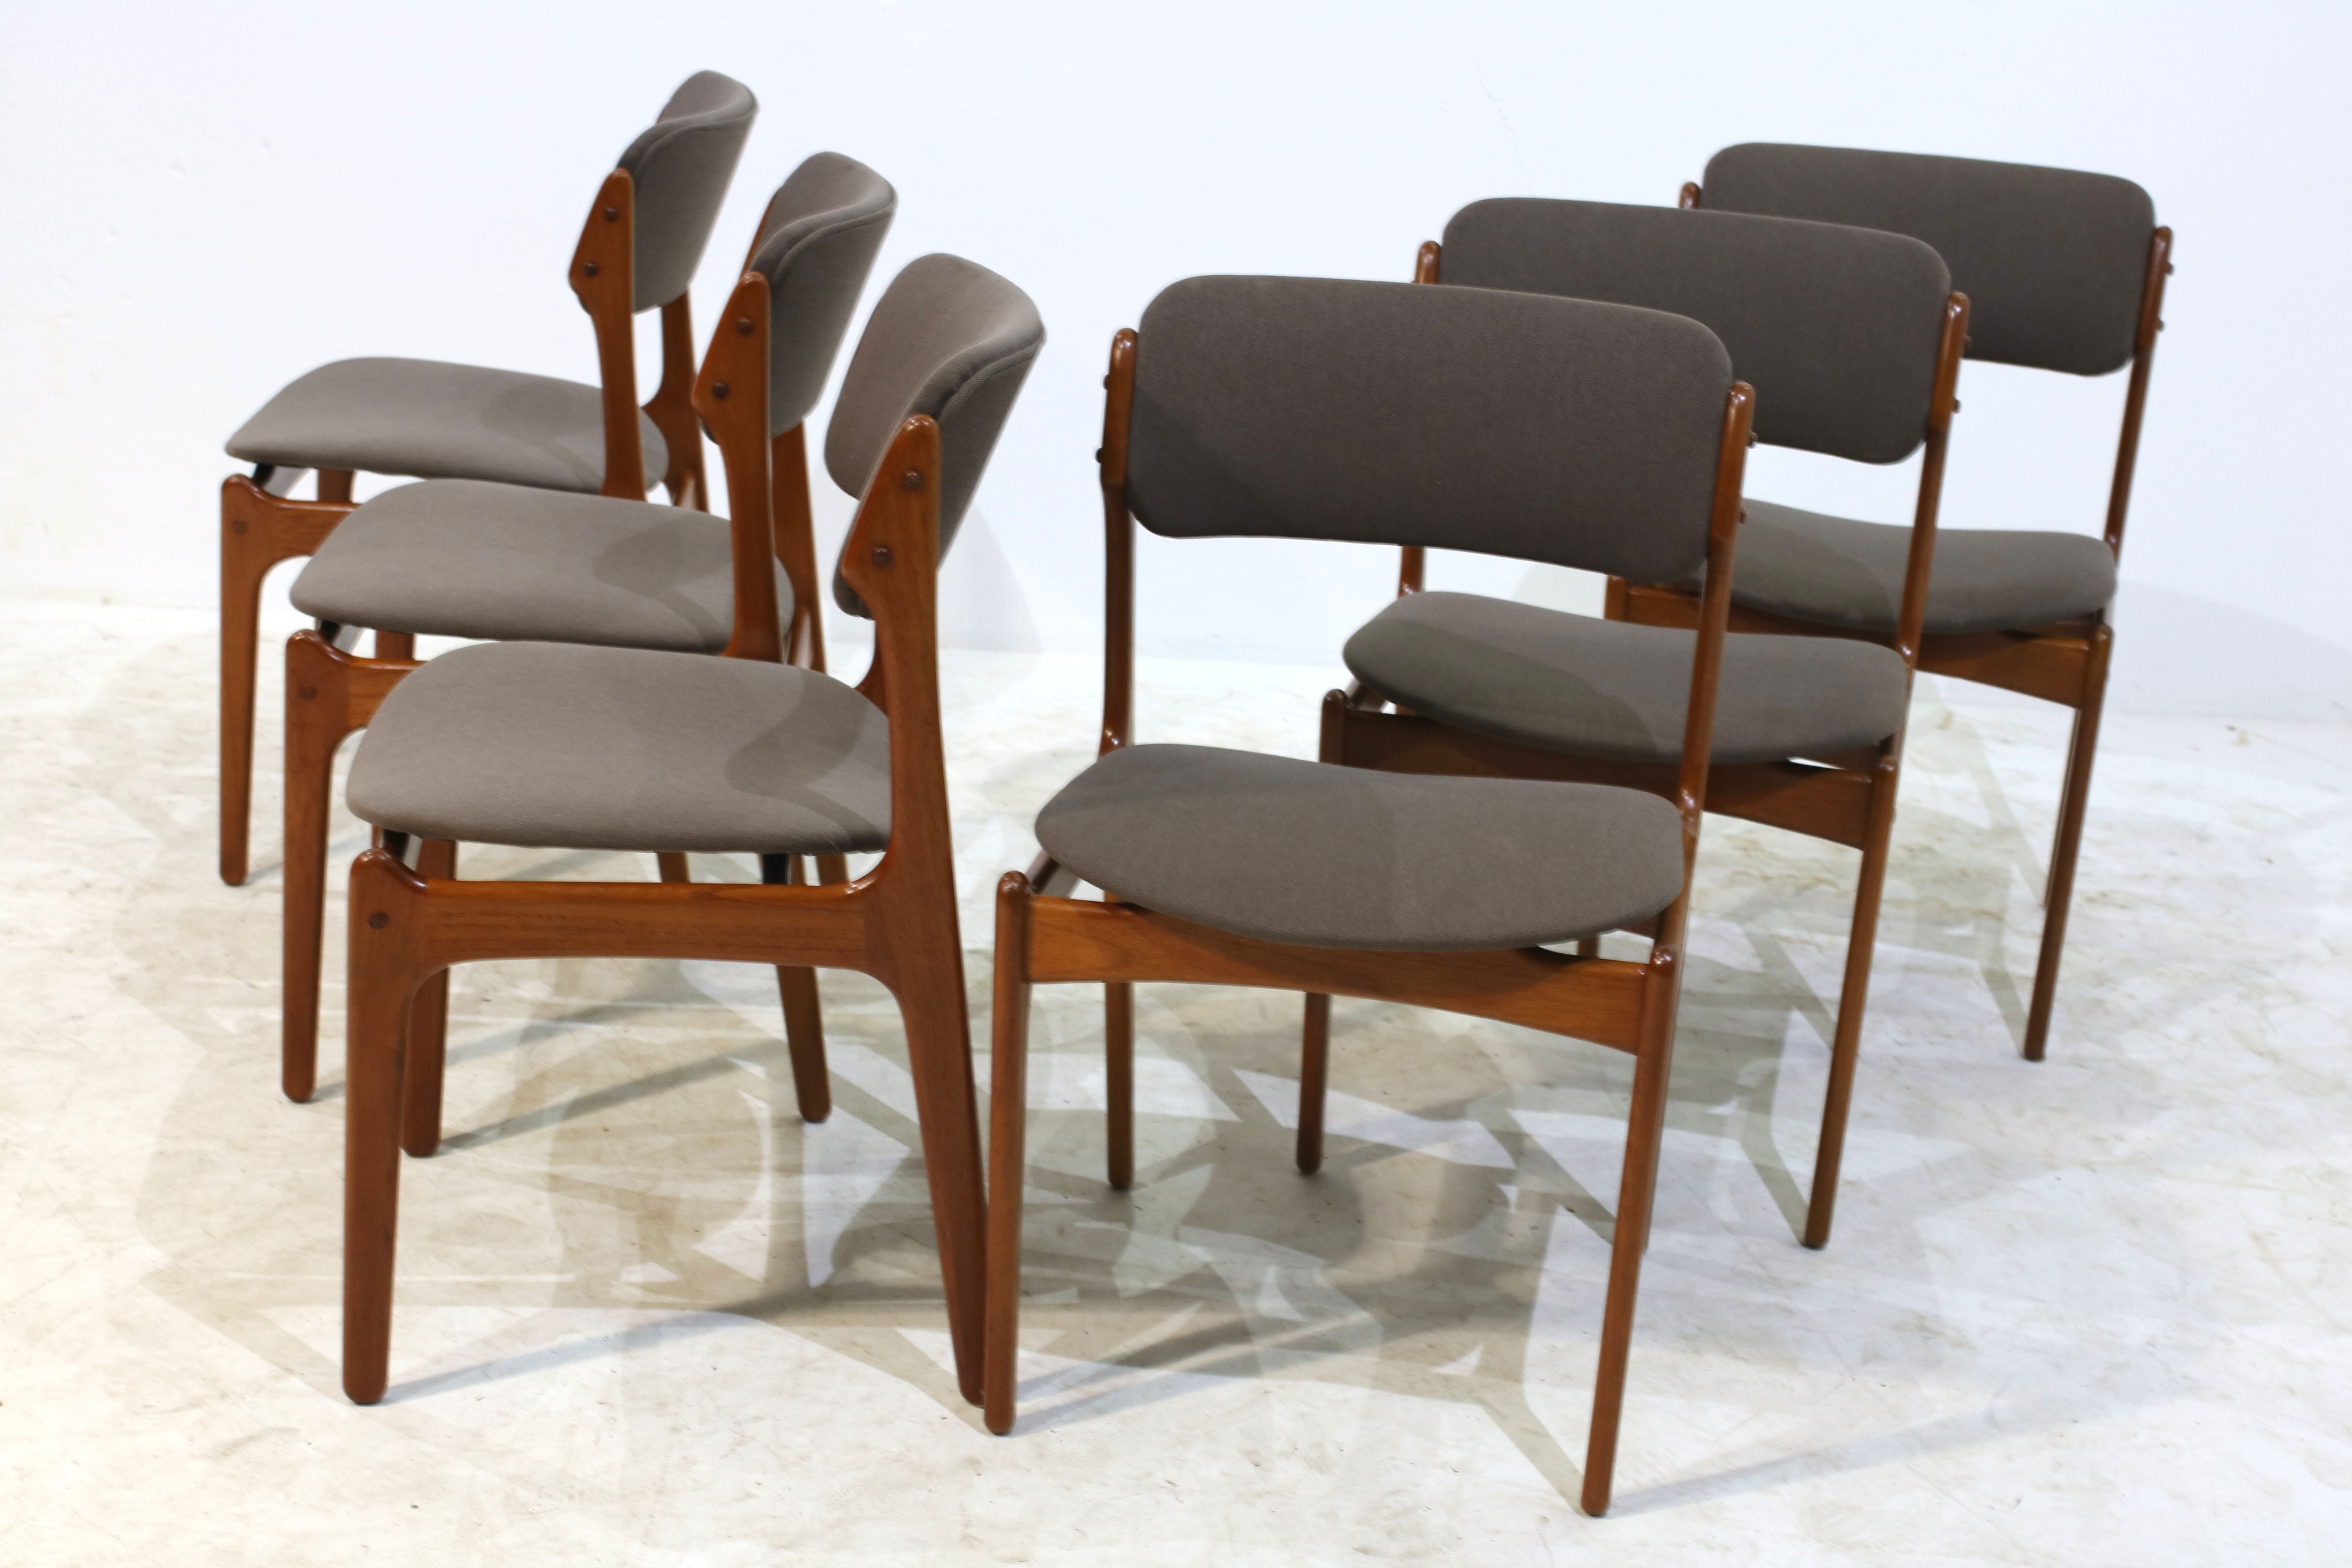 Set of 6 teak dining chairs by Erik Buch for Oddense